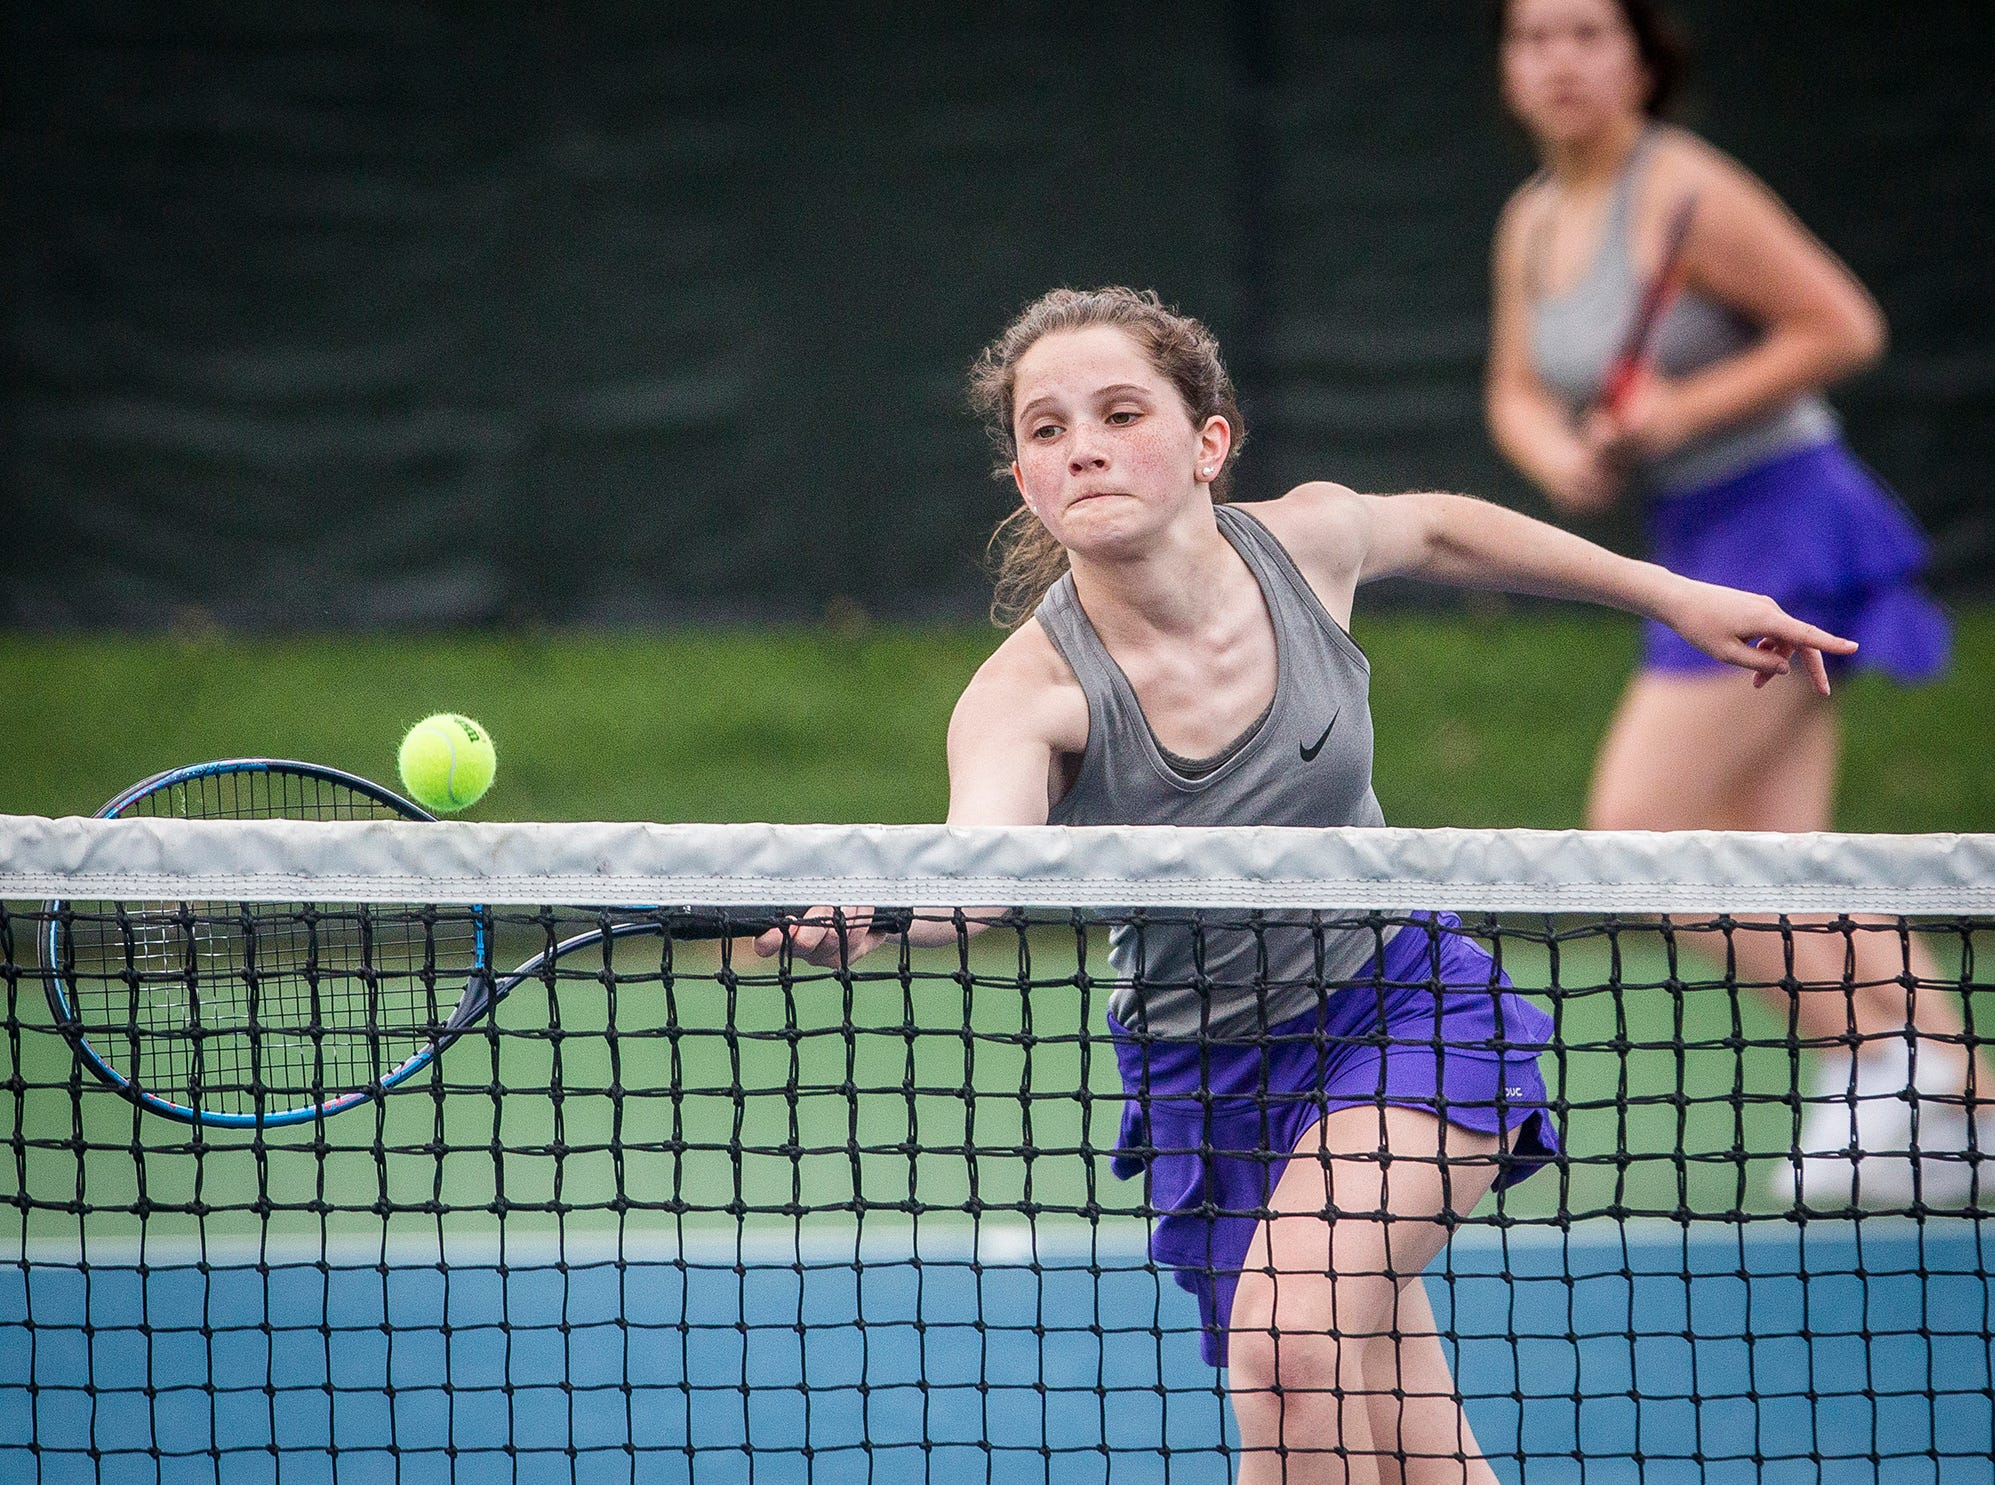 Central's Gracie Evans and Amelia Onate compete against Burris' Edom Alemayehu and Rosie Bracken during their singles match at Ball State Thursday, April 11, 2019.